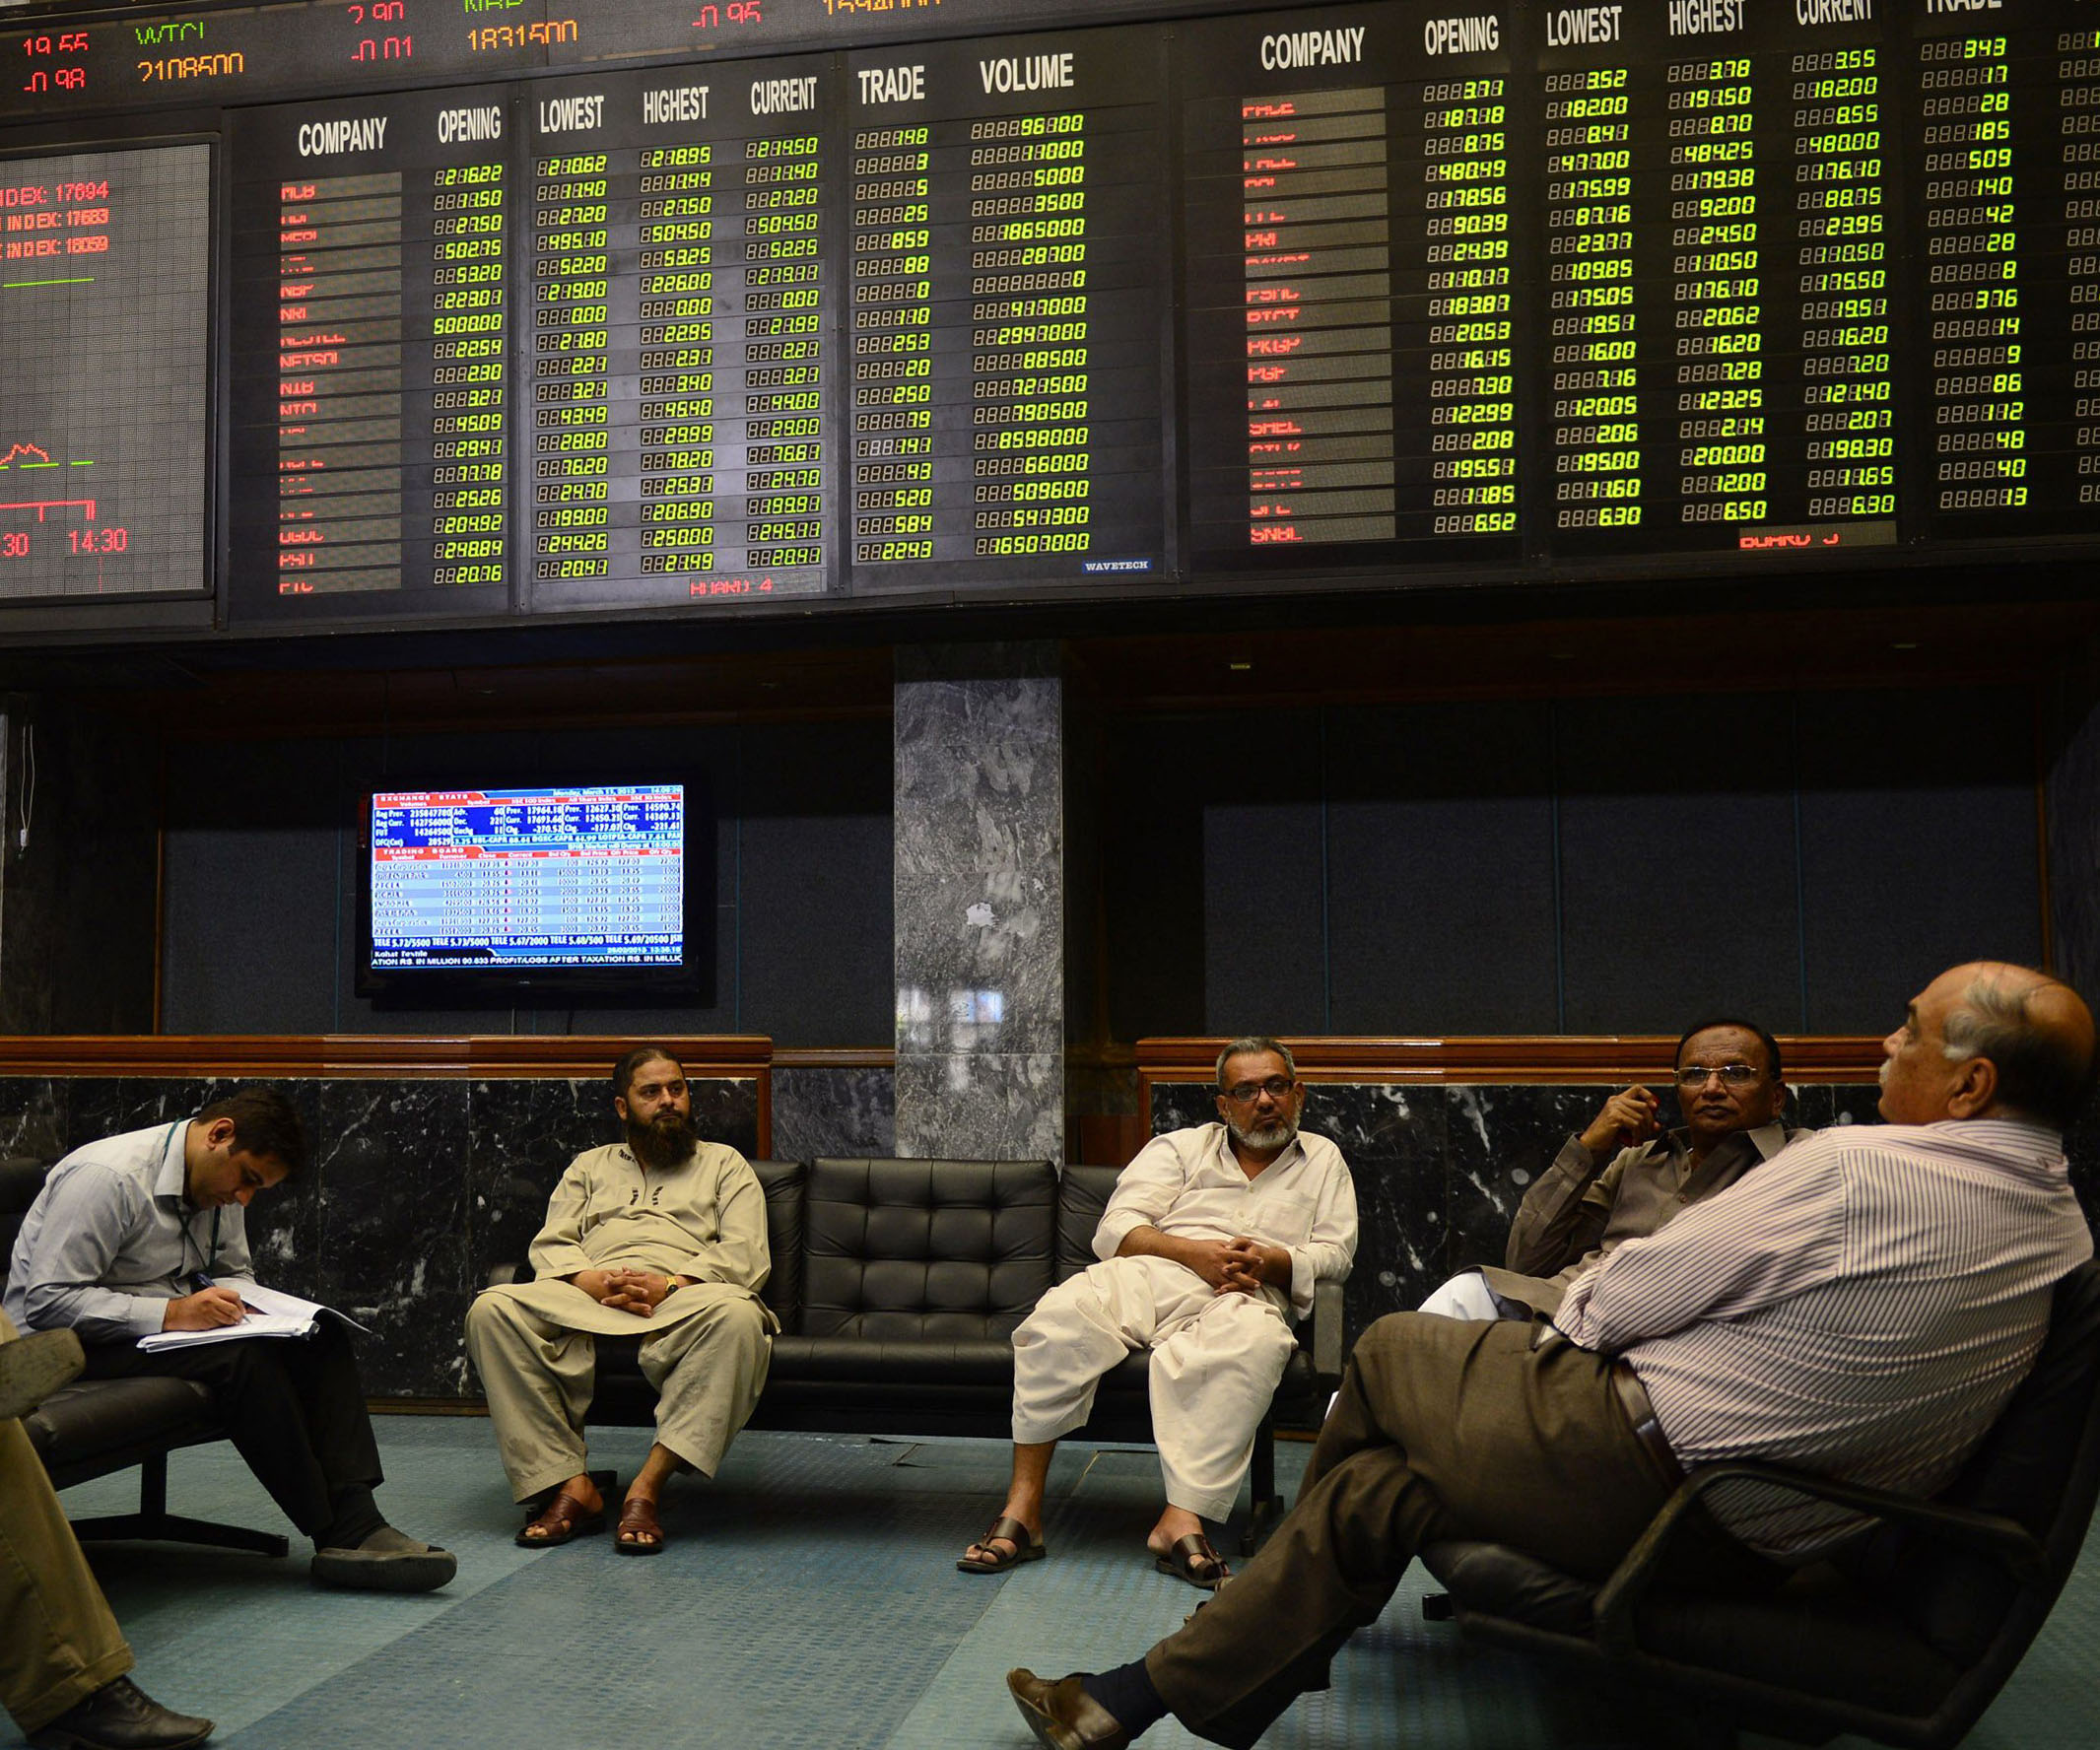 benchmark index increases 1 66 to settle at 38 965 01 photo afp